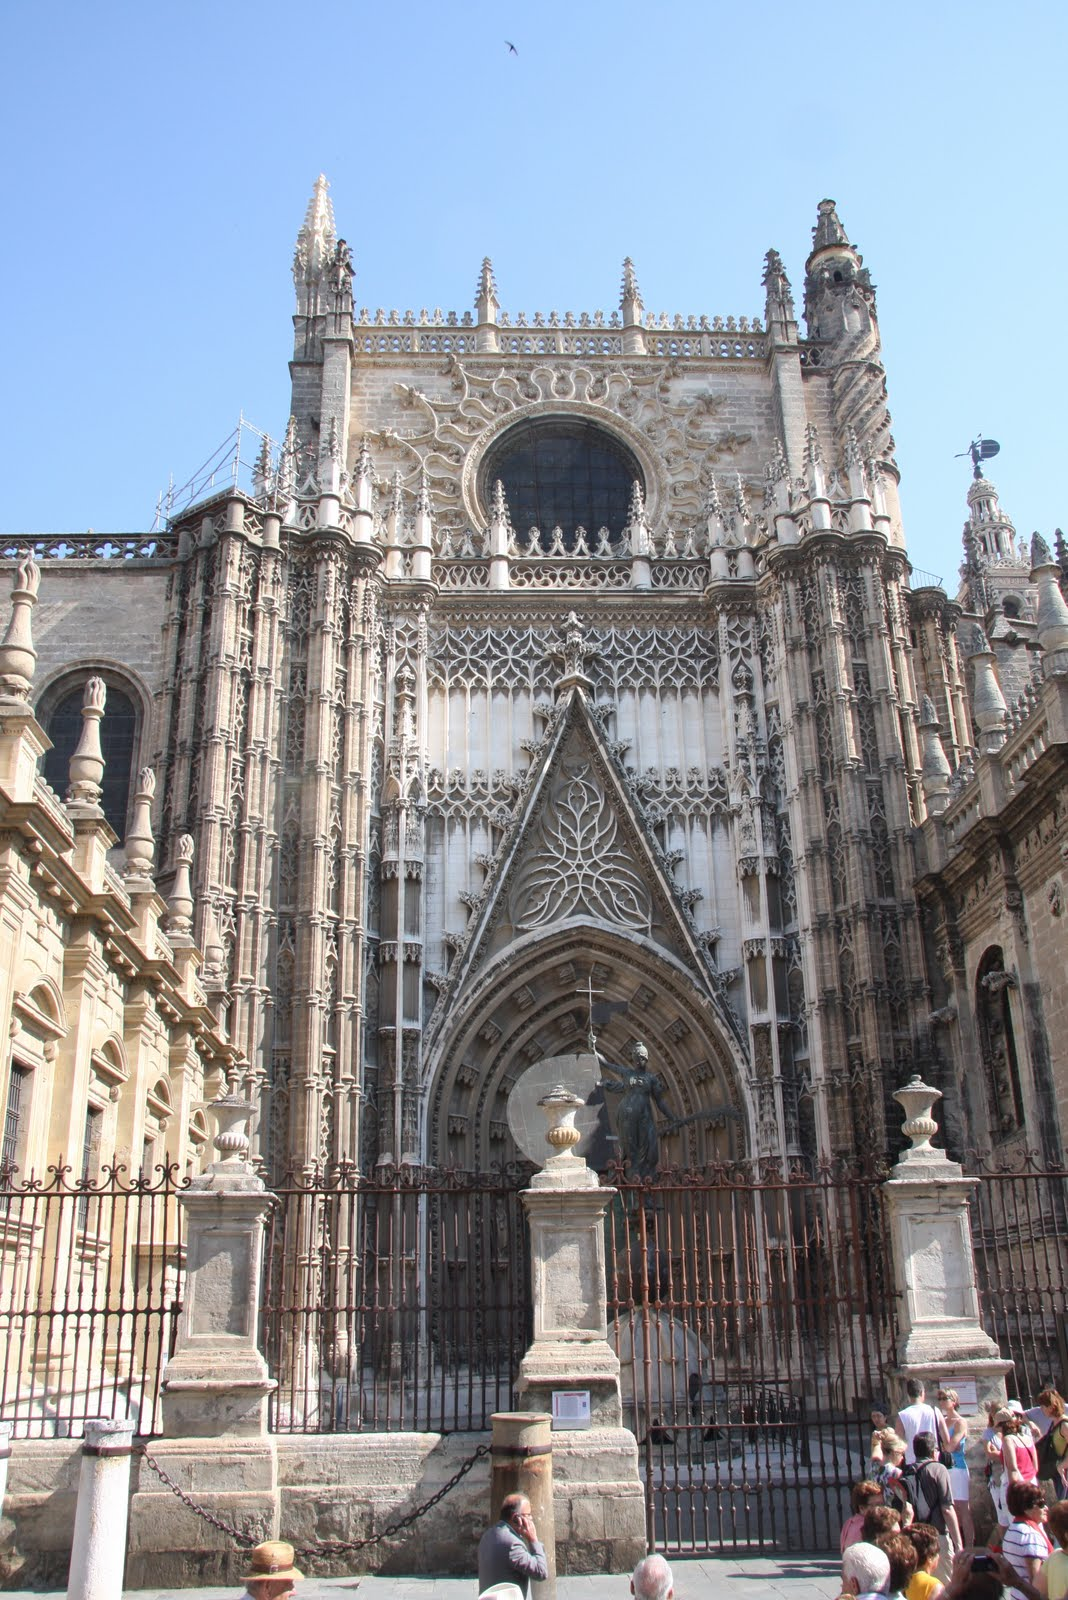 Exterior Catedral De Sevilla Of Upstream Sight Exterior Del Catedral De Sevilla